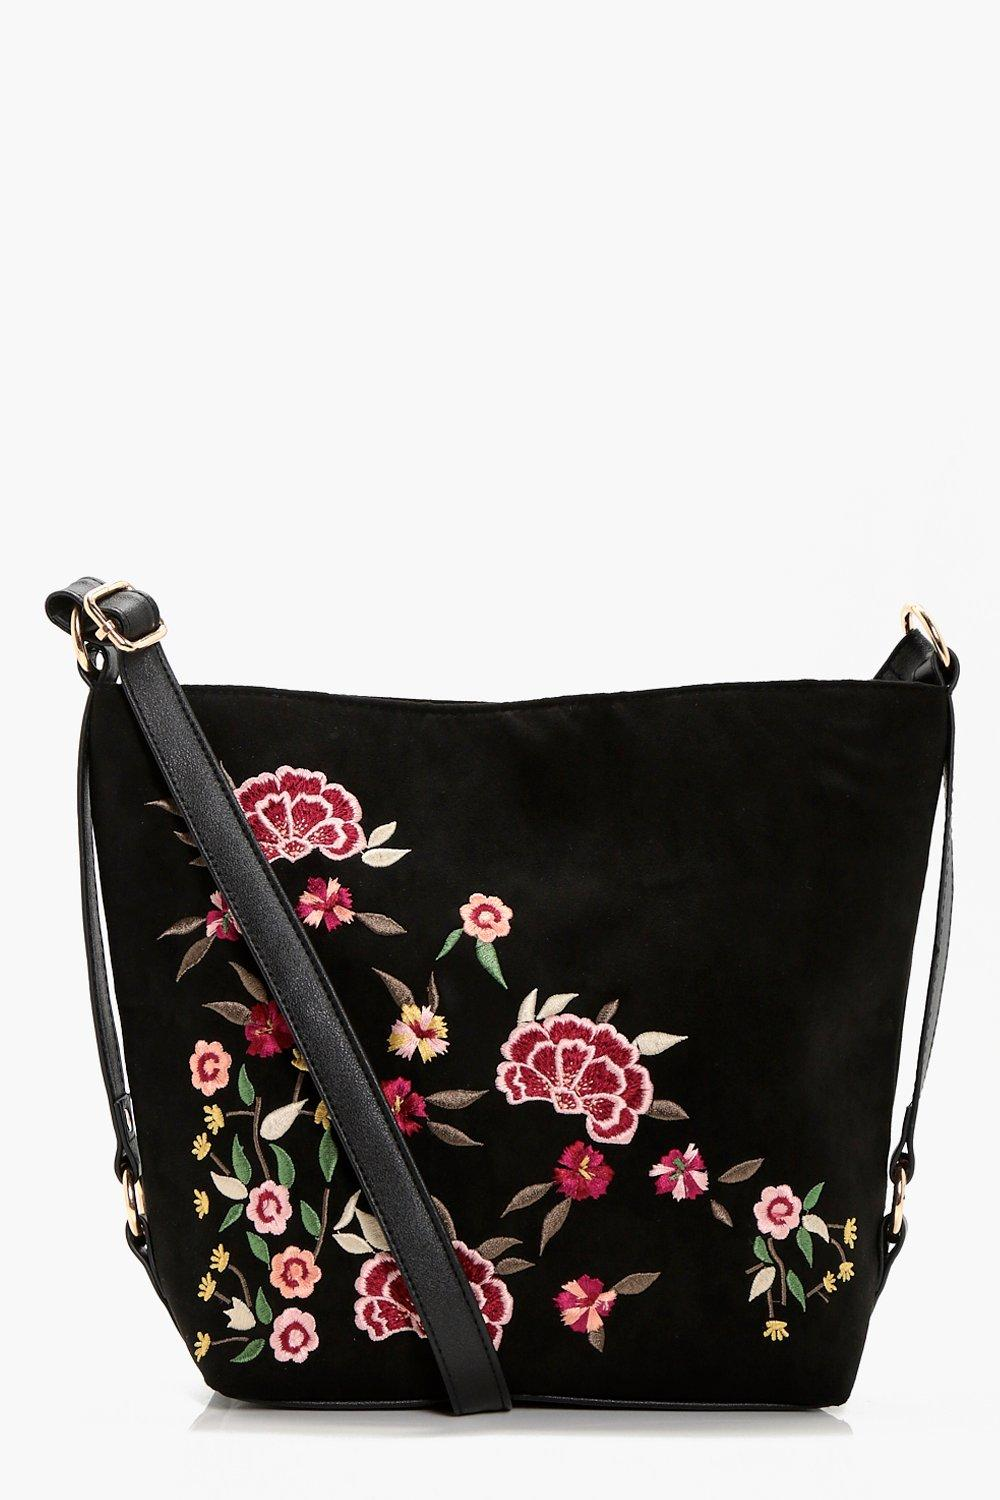 Embroidered & Stud Bucket Cross Body - black - Ros